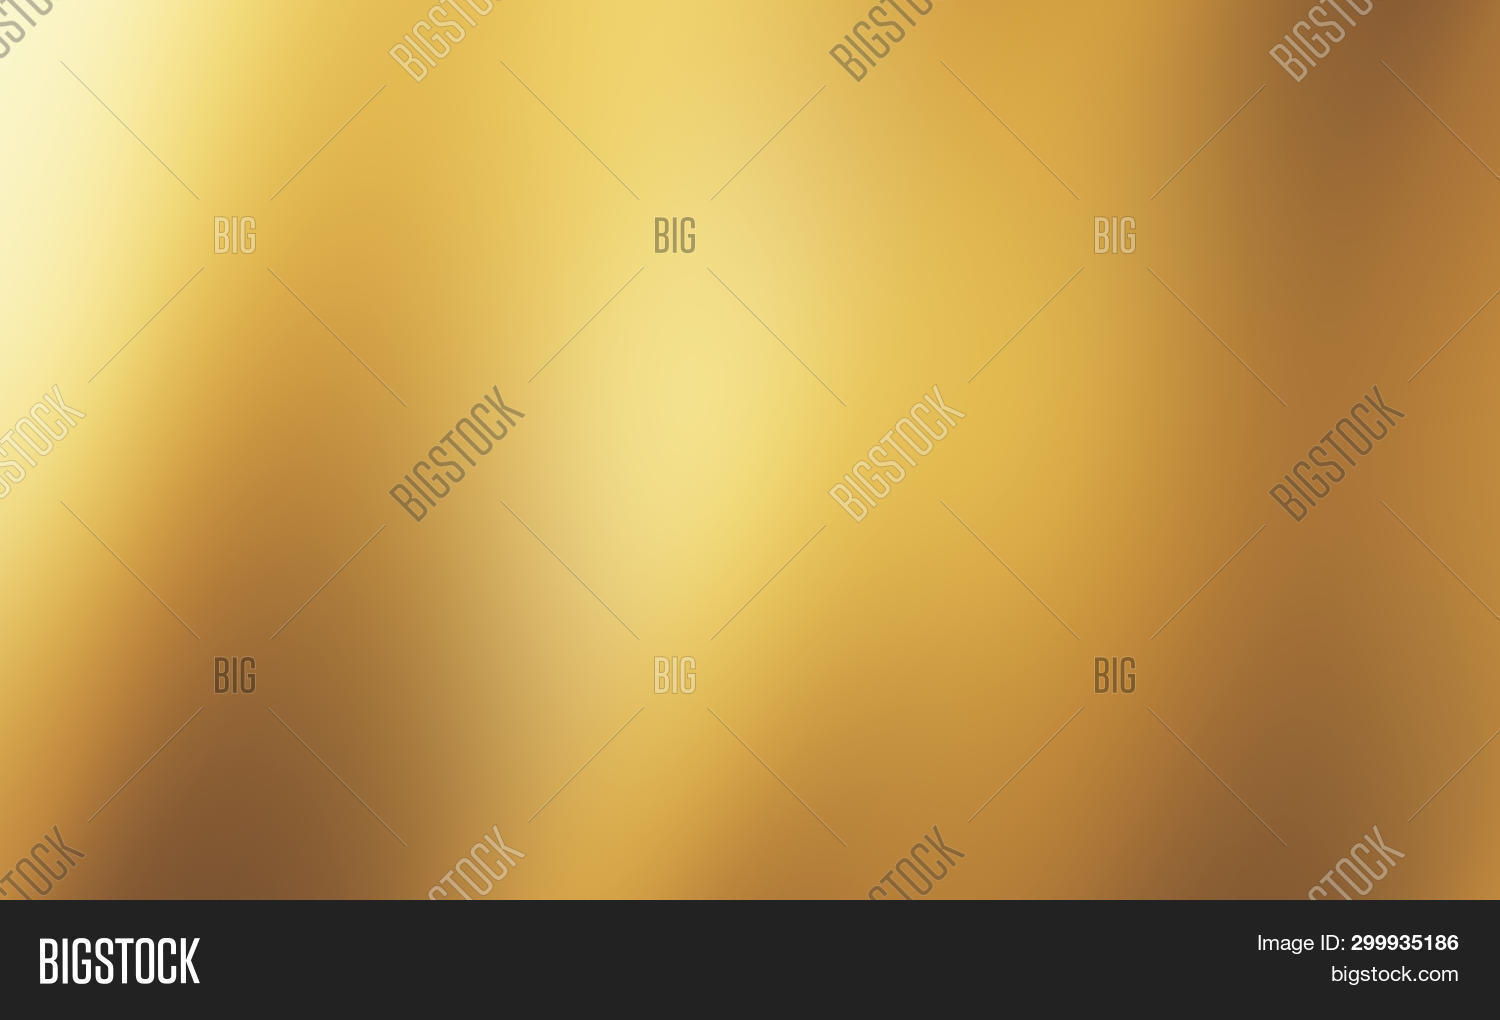 abstract,anniversary,background,banner,blur,brass,bright,brochure,bronze,brown,christmas,color,defocused,design,elegant,fancy,foil,glamorous,glamour,glitz,glitzy,gold,golden,gradient,heaven,light,luxury,metal,metallic,old,paint,paper,poster,rich,shine,shiny,sidebar,soft,sun,sunshine,template,texture,vintage,wall,warm,web,website,wedding,wrapping,yellow